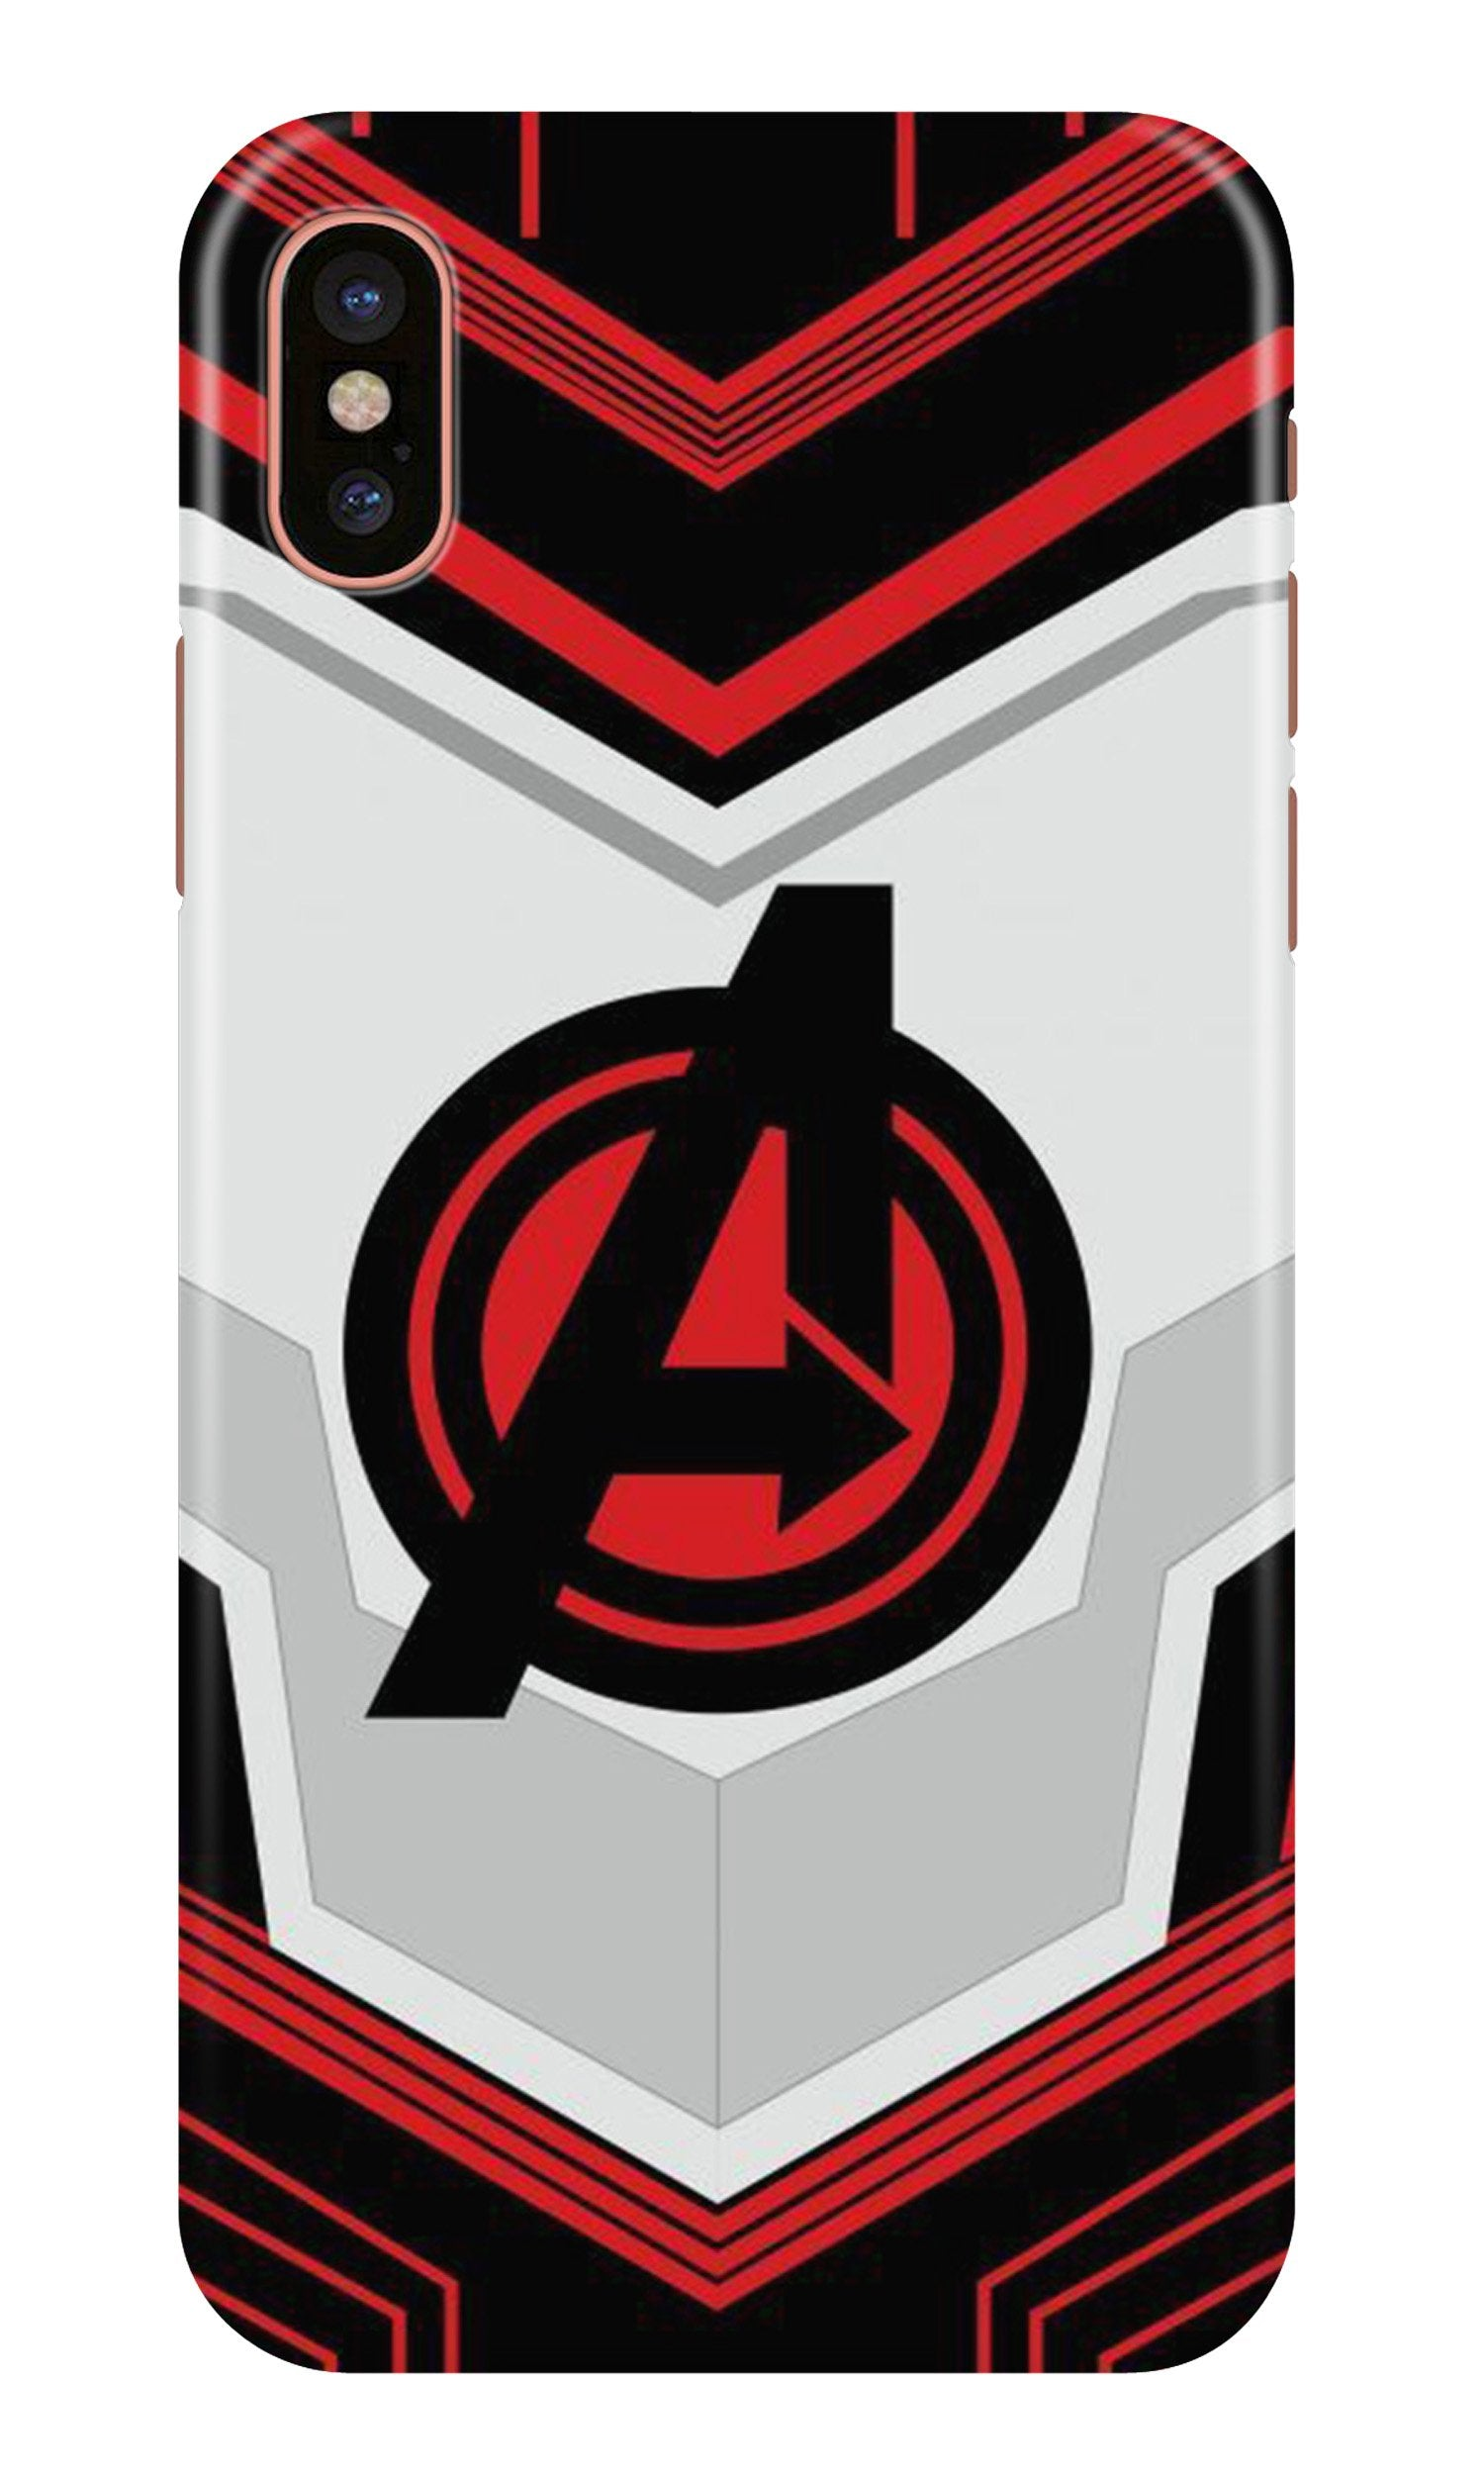 Avengers2 Case for iPhone X (Design No. 255)